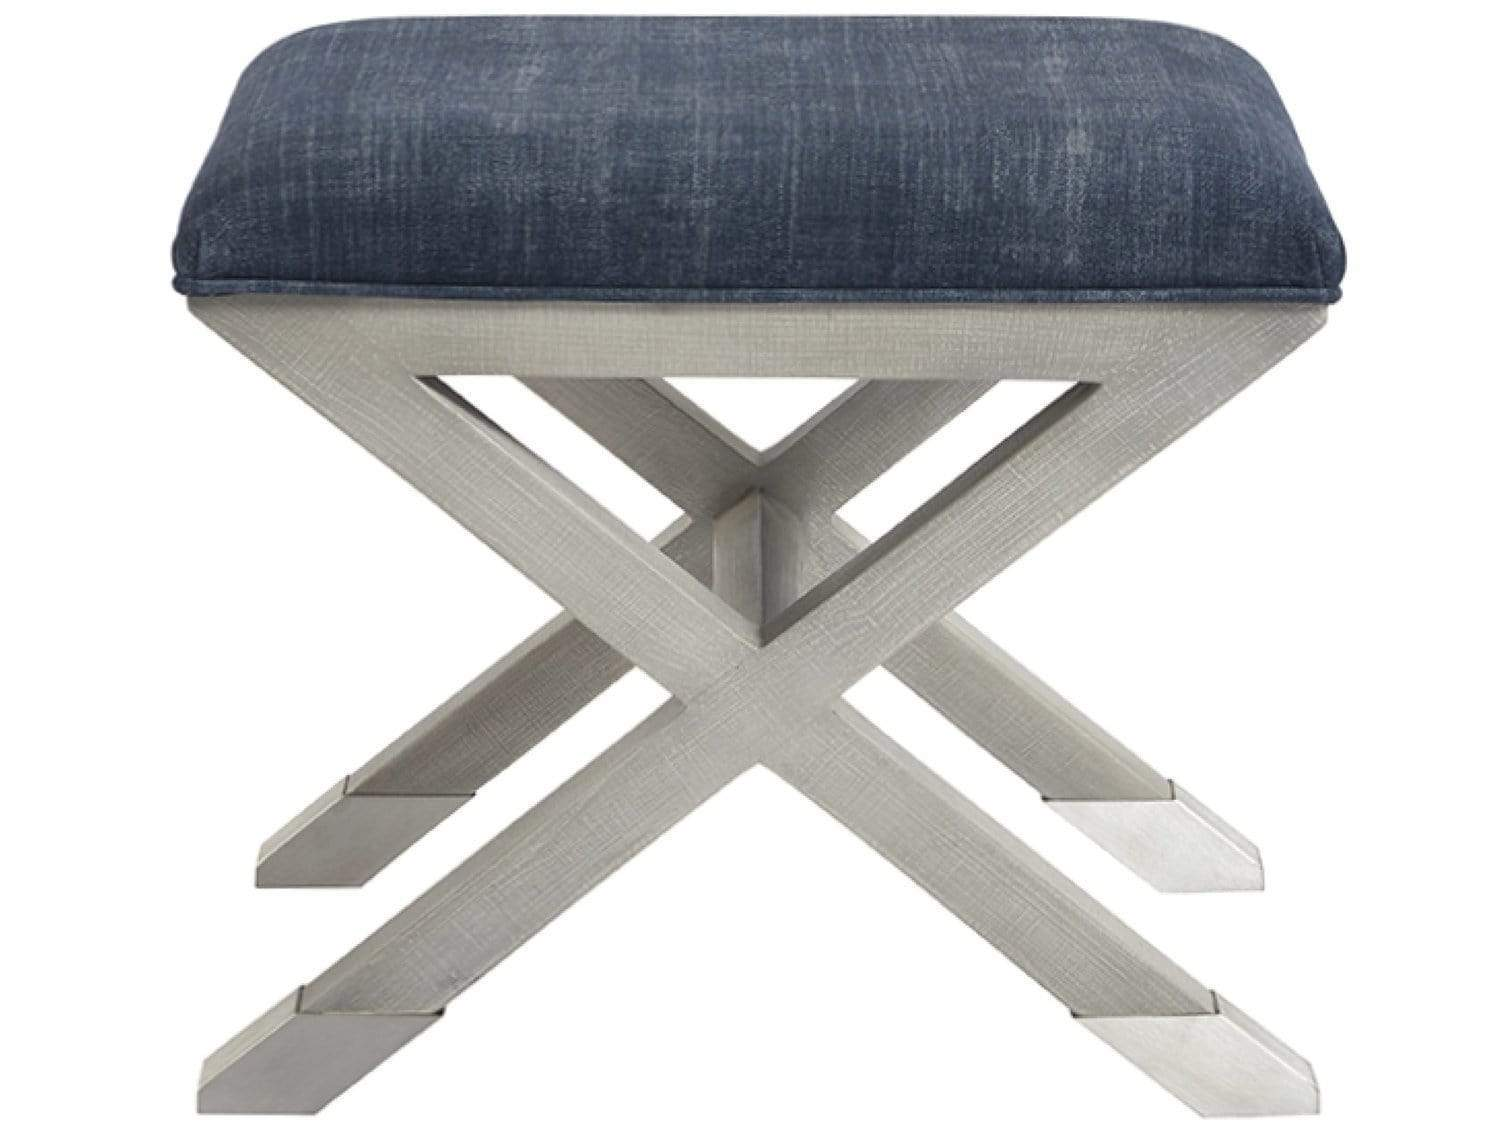 Alchemy Living Alchemy Living Malibu Bench - Blue 807223